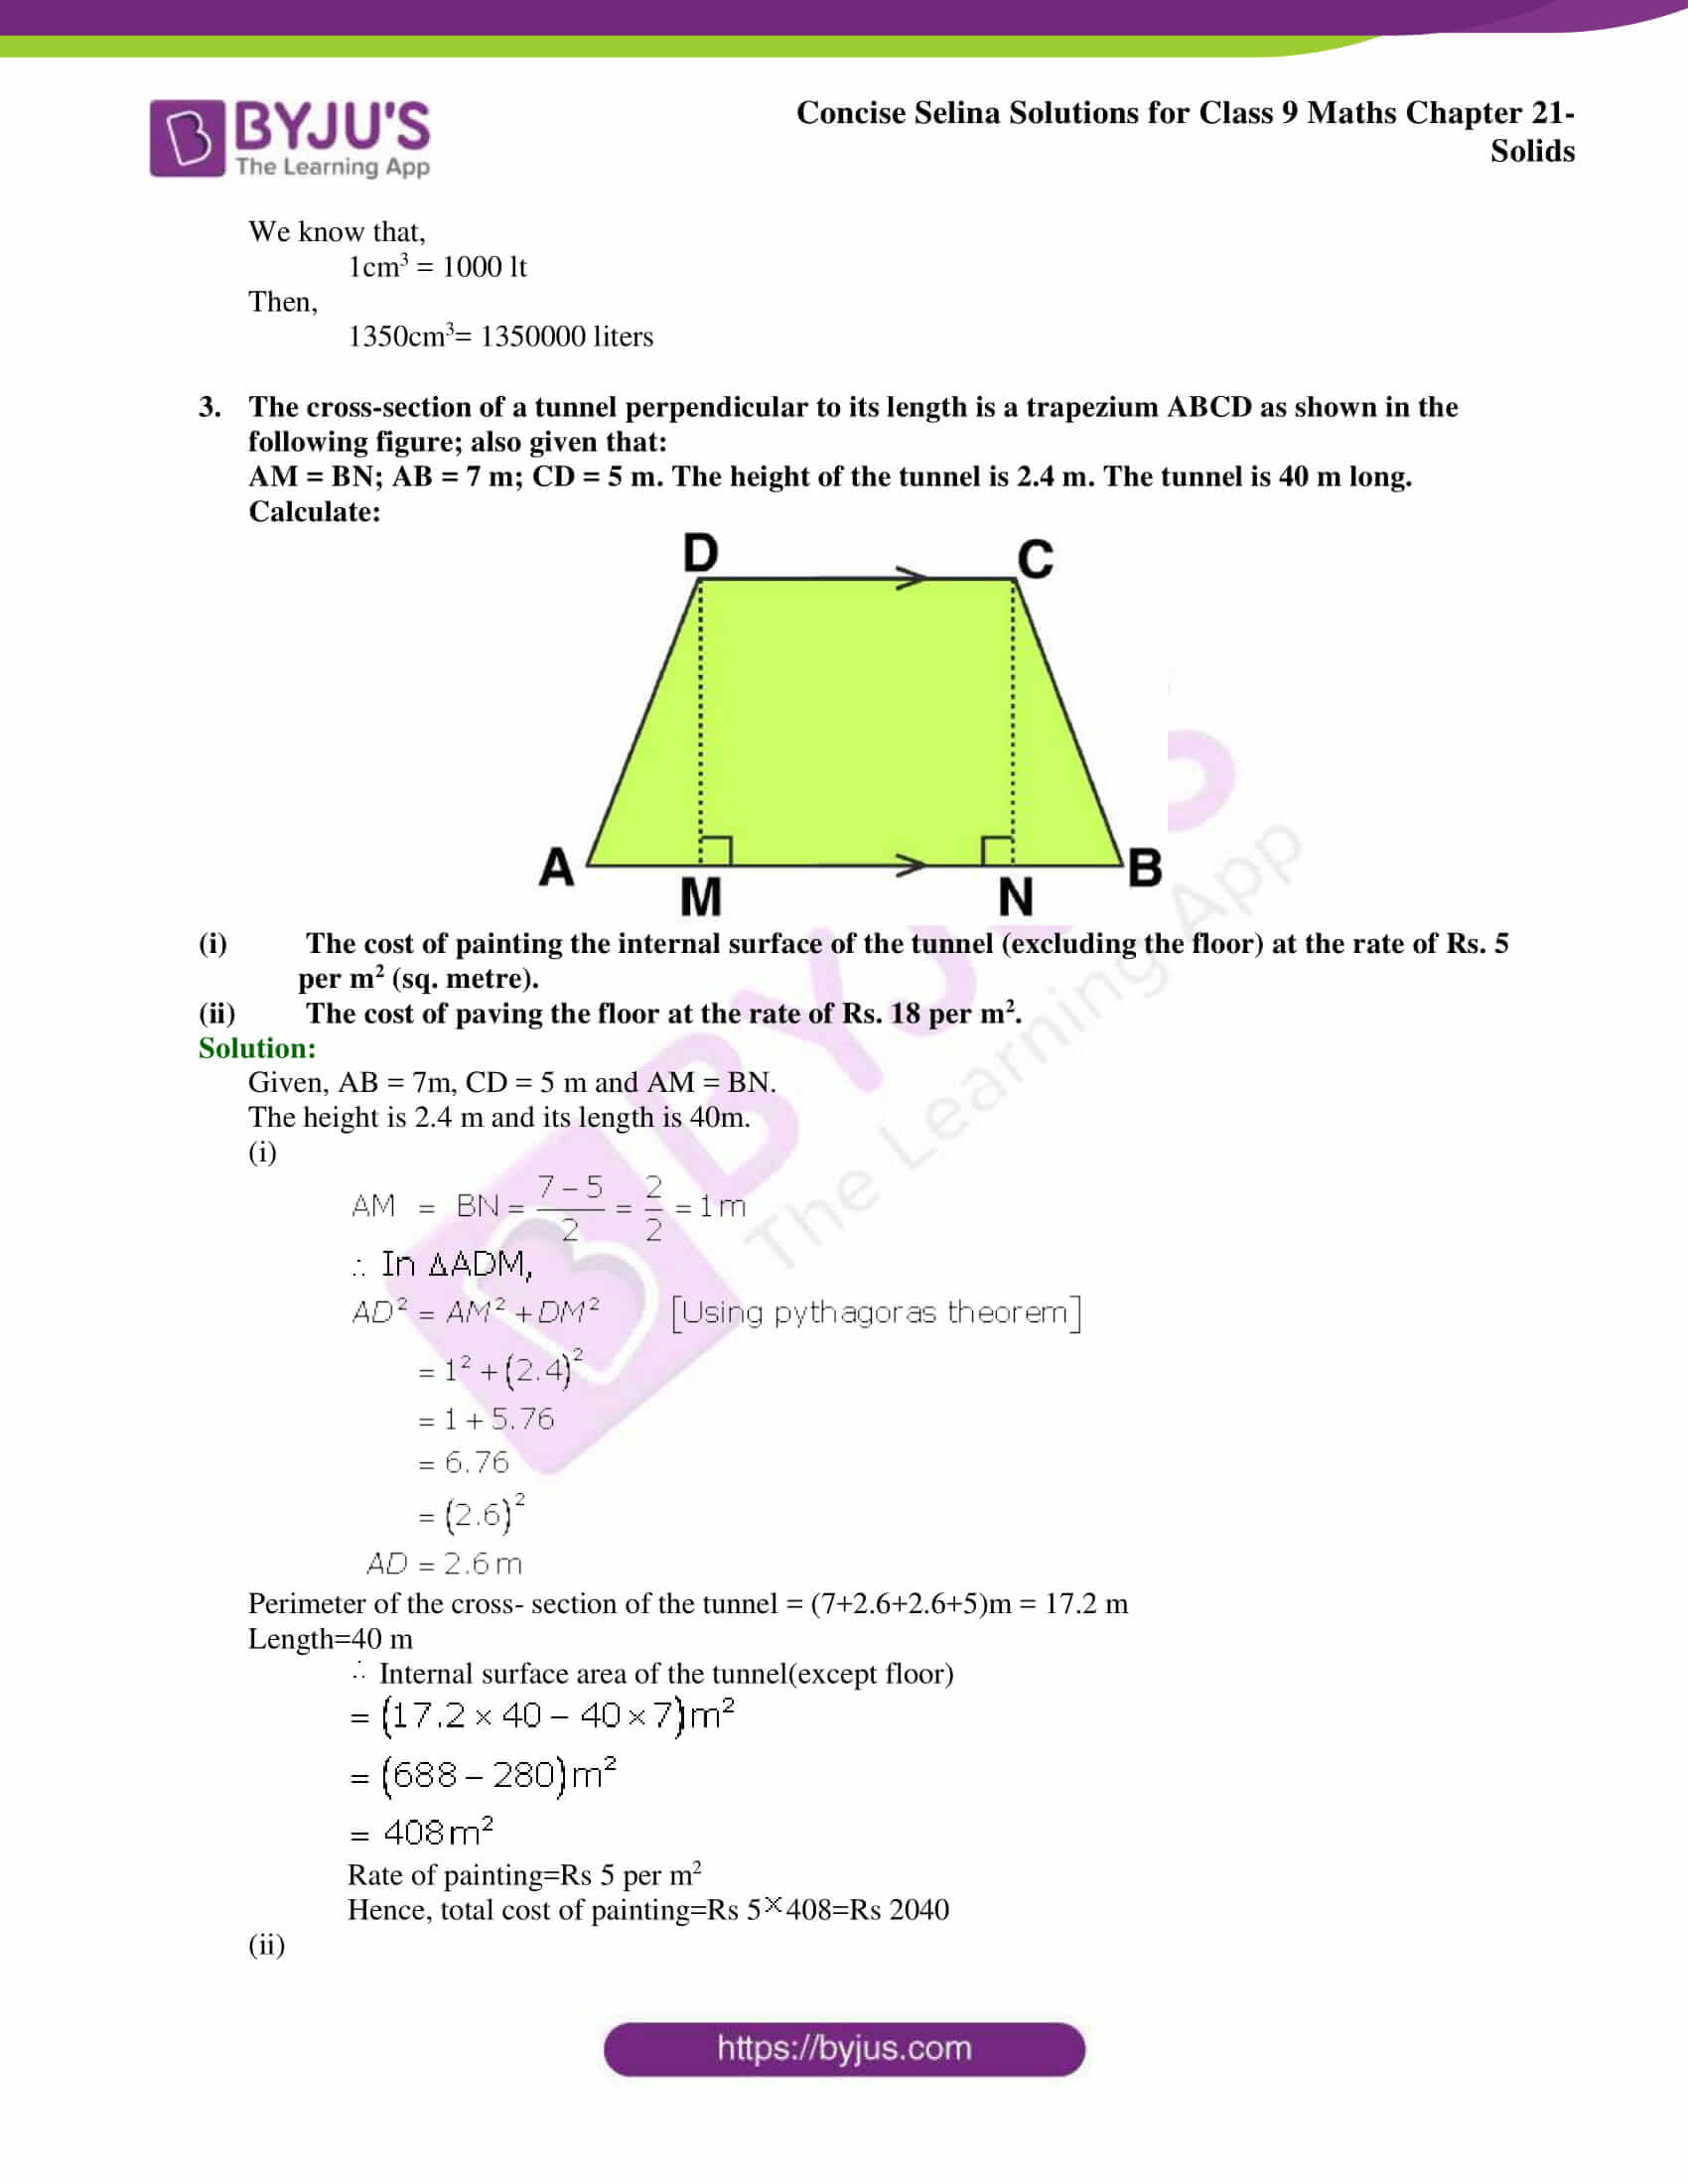 Concise Selina Solutions Class 9 Maths Chapter 21 Solids part 08